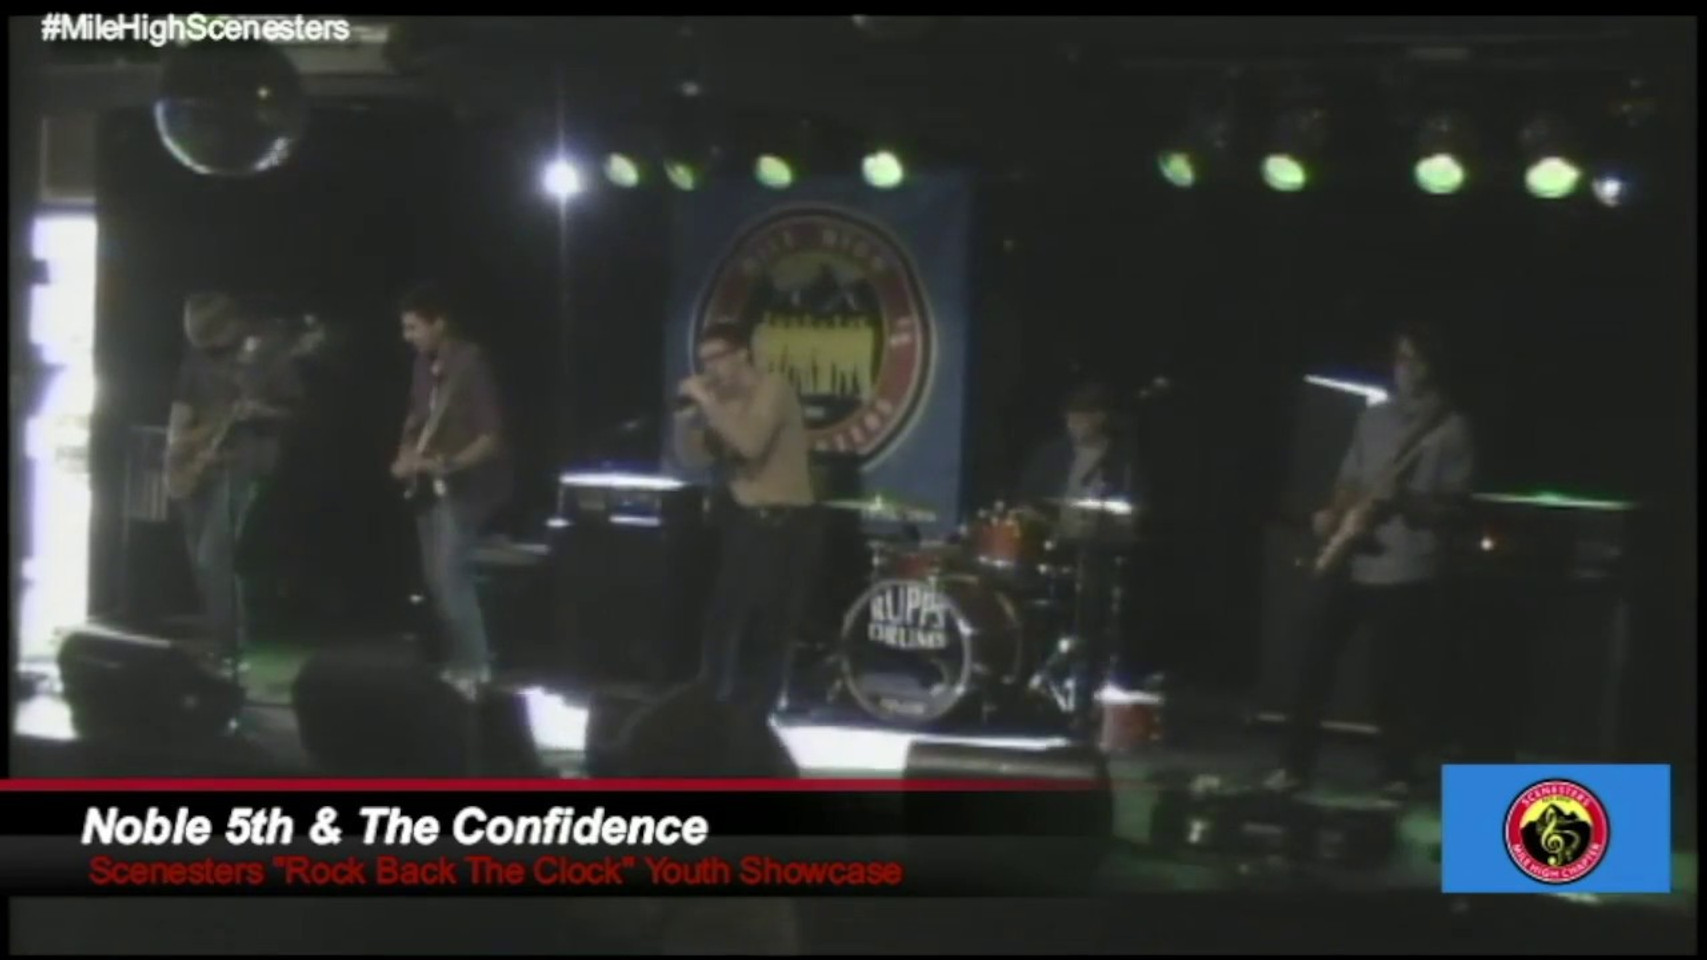 Noble 5th and The Confidence